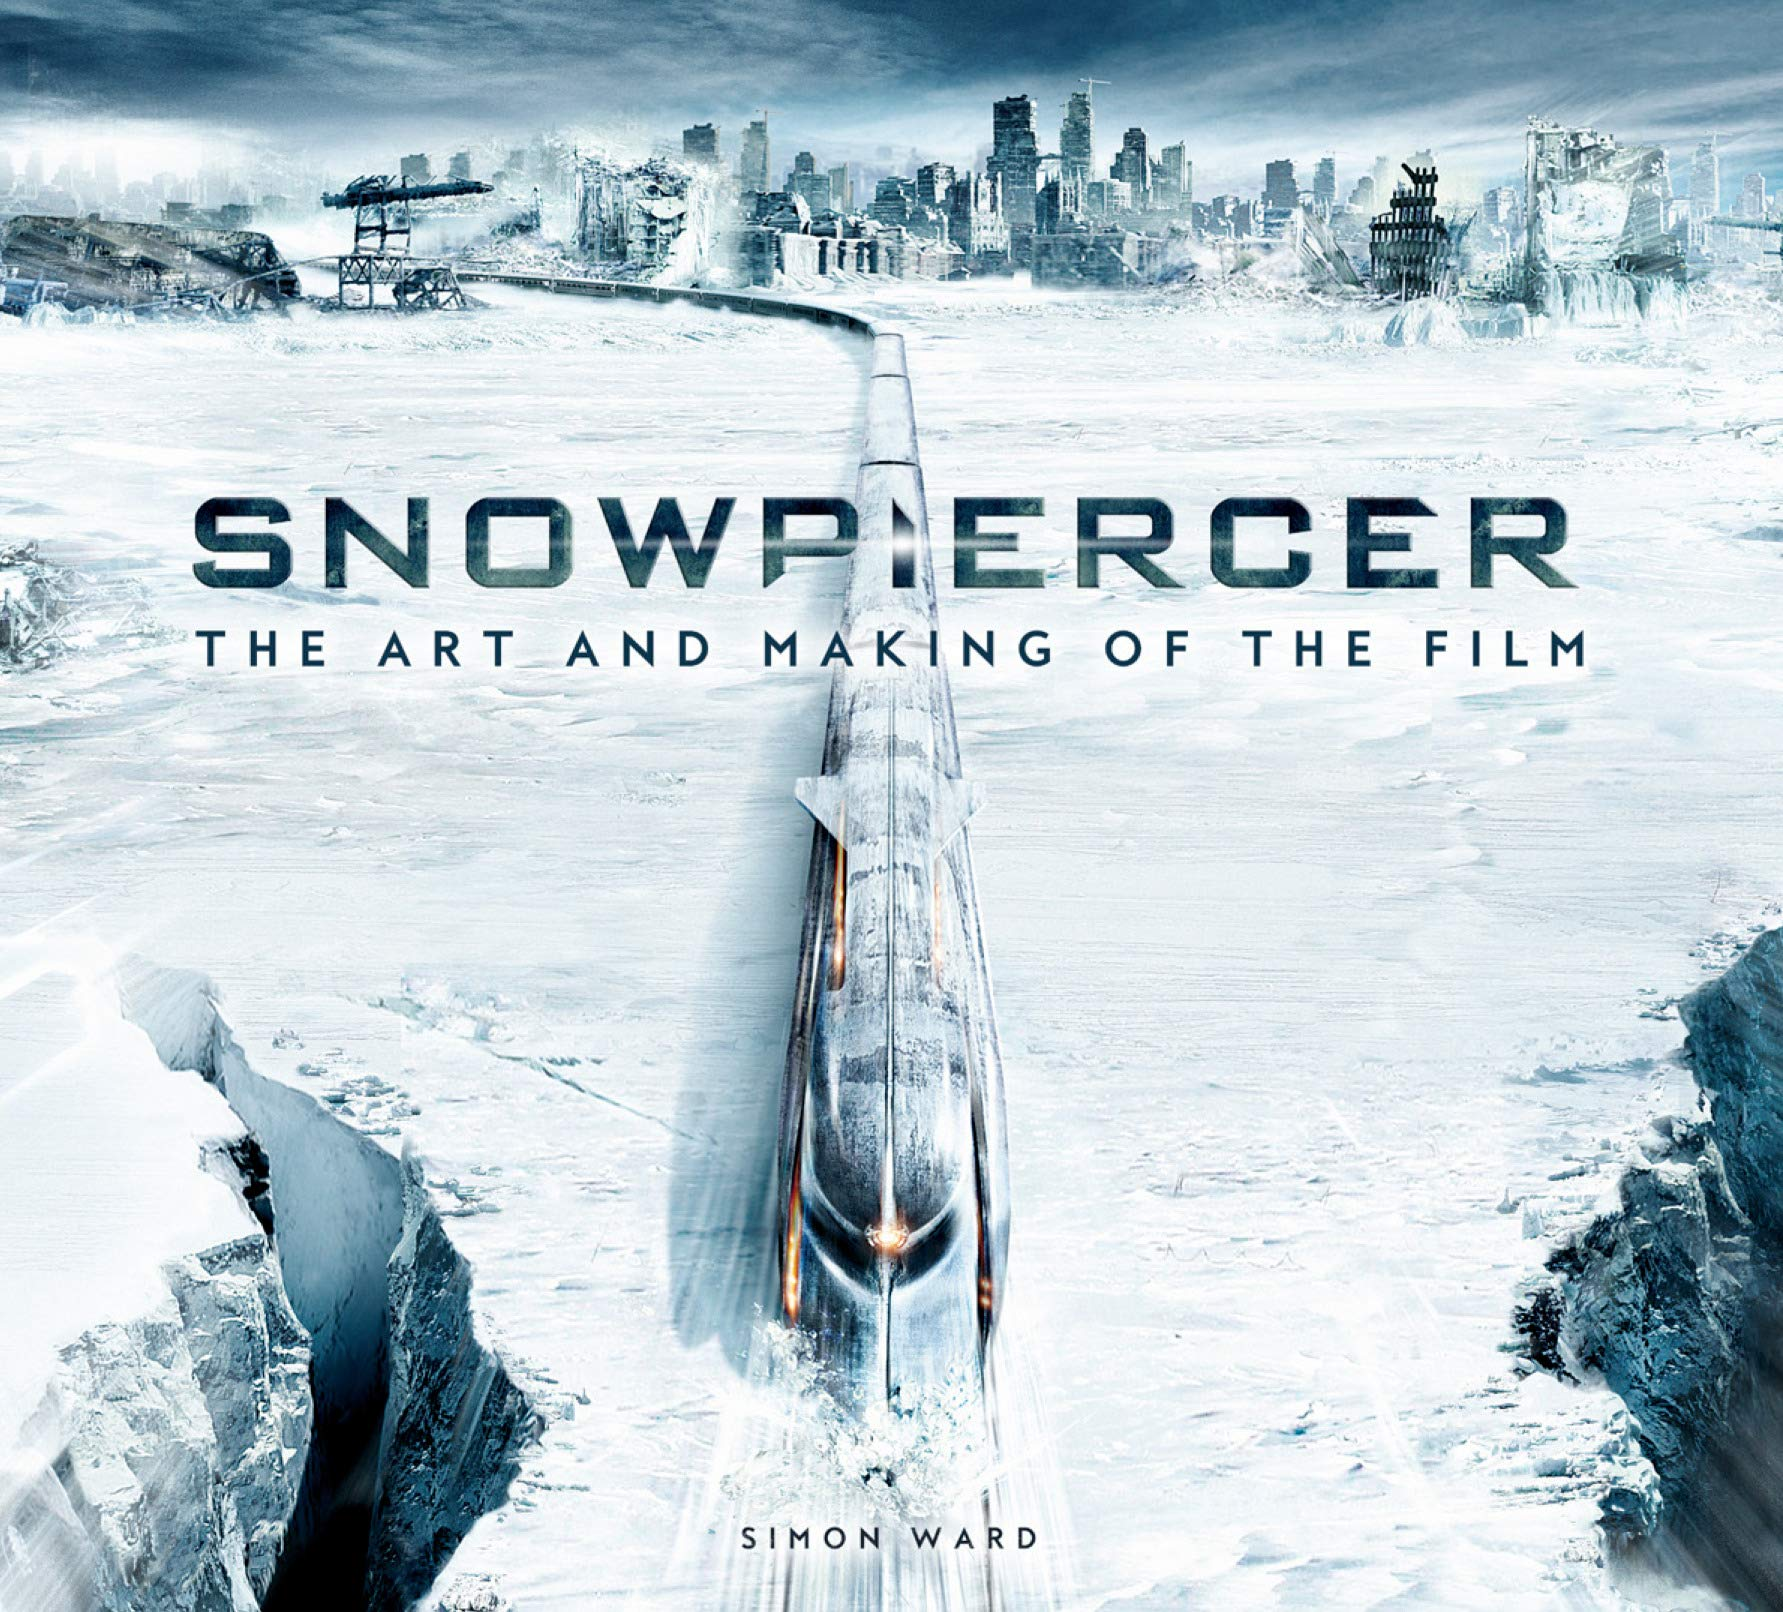 Snowpiercer: The Art and Making of the Film Book Review